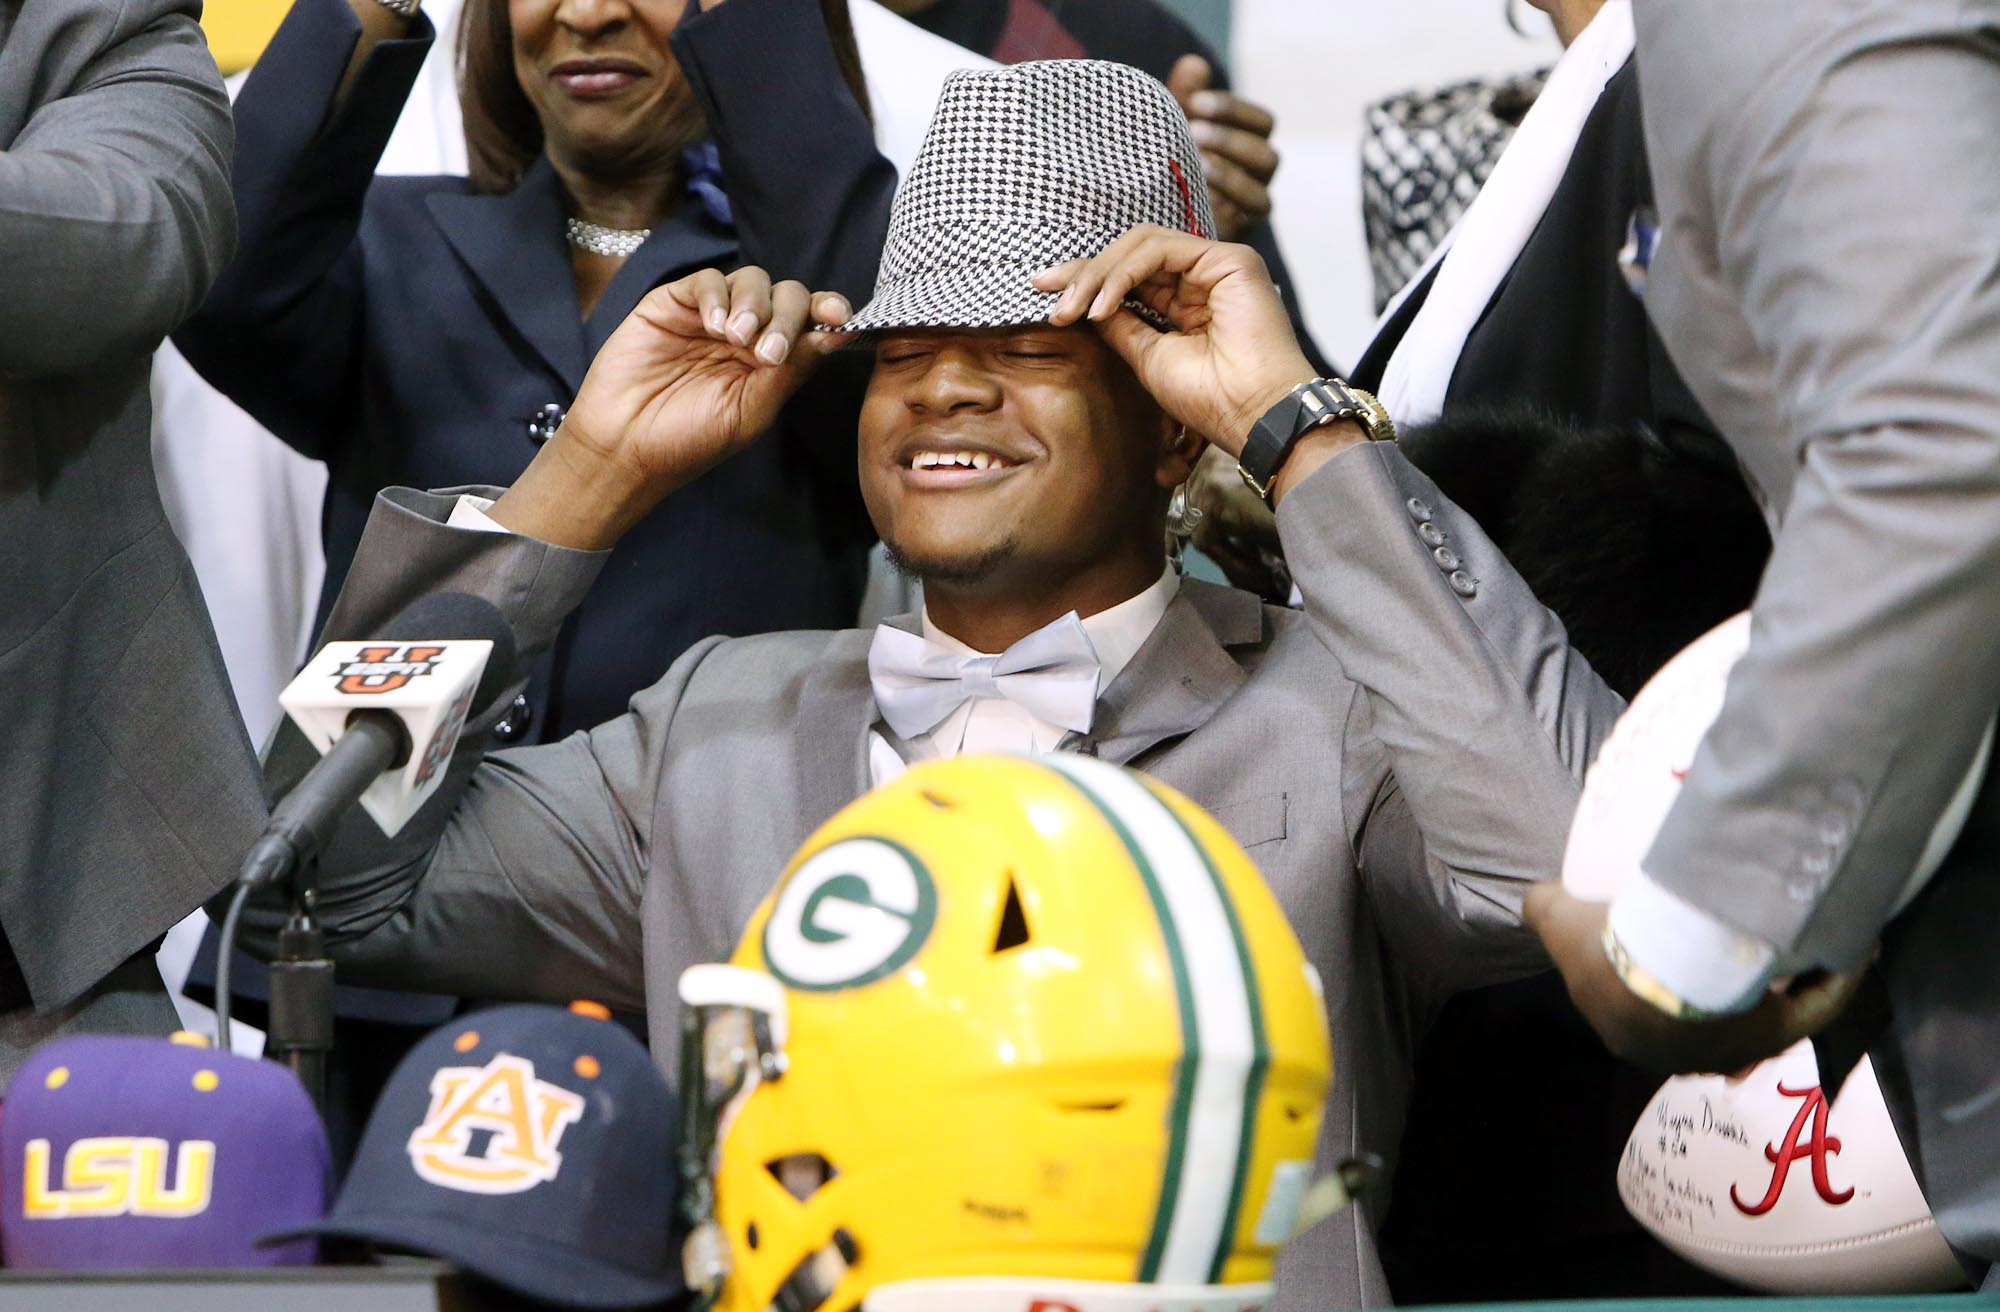 Gordo High School football player Ben Davis, seated beside his parents, Faye and Wayne, dons a houndstooth hat after committing to attend Alabama during a national signing day Program at Gordo High School, Wednesday, Feb. 3, 2016, in Tuscaloosa Ala. (Mich